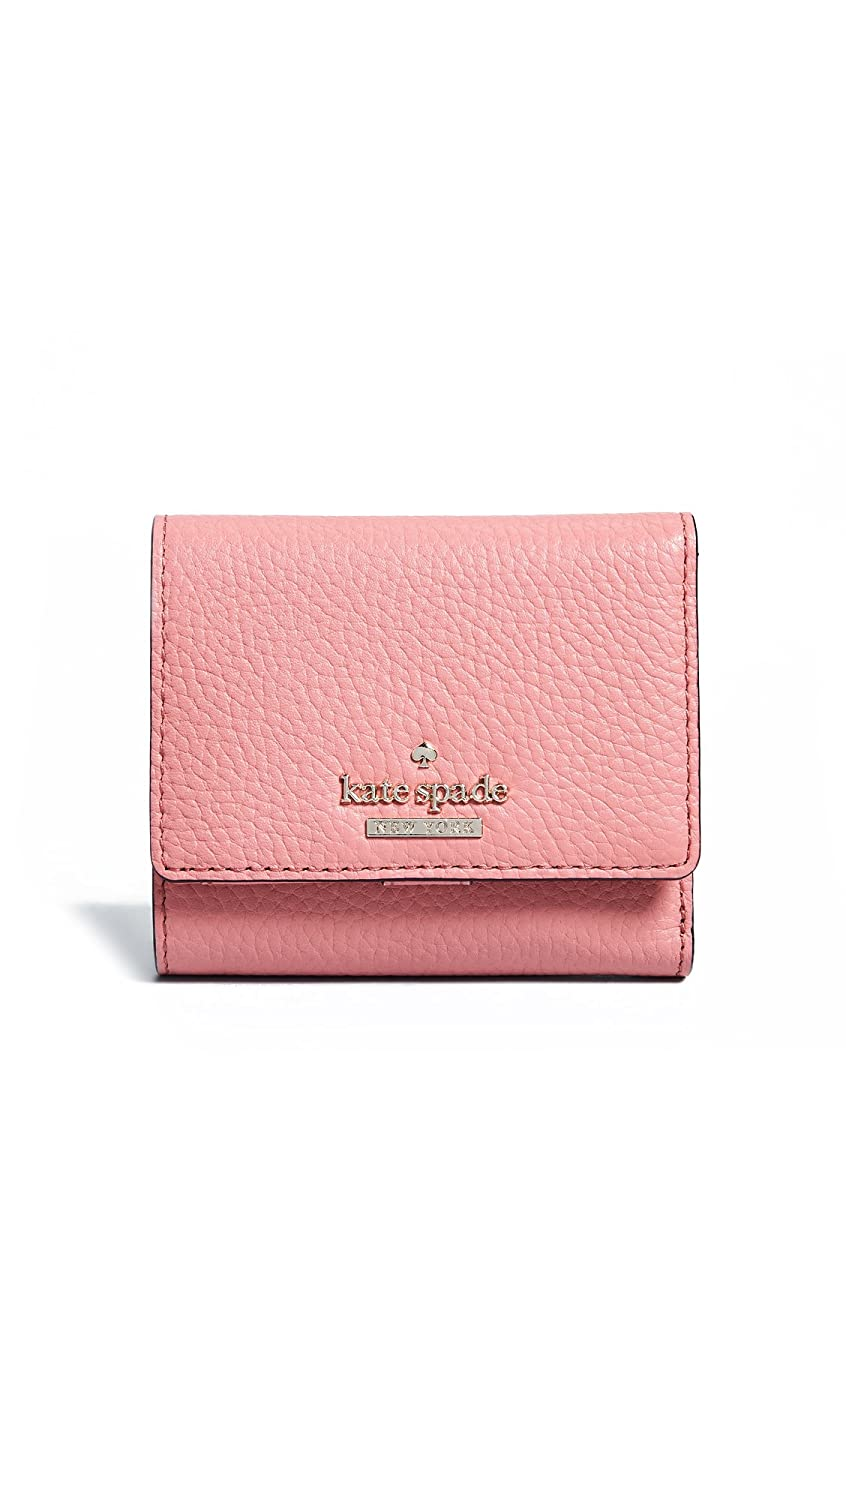 Kate Spade New York Women's Jackson Street Jada Wallet Coral Pebble One Size